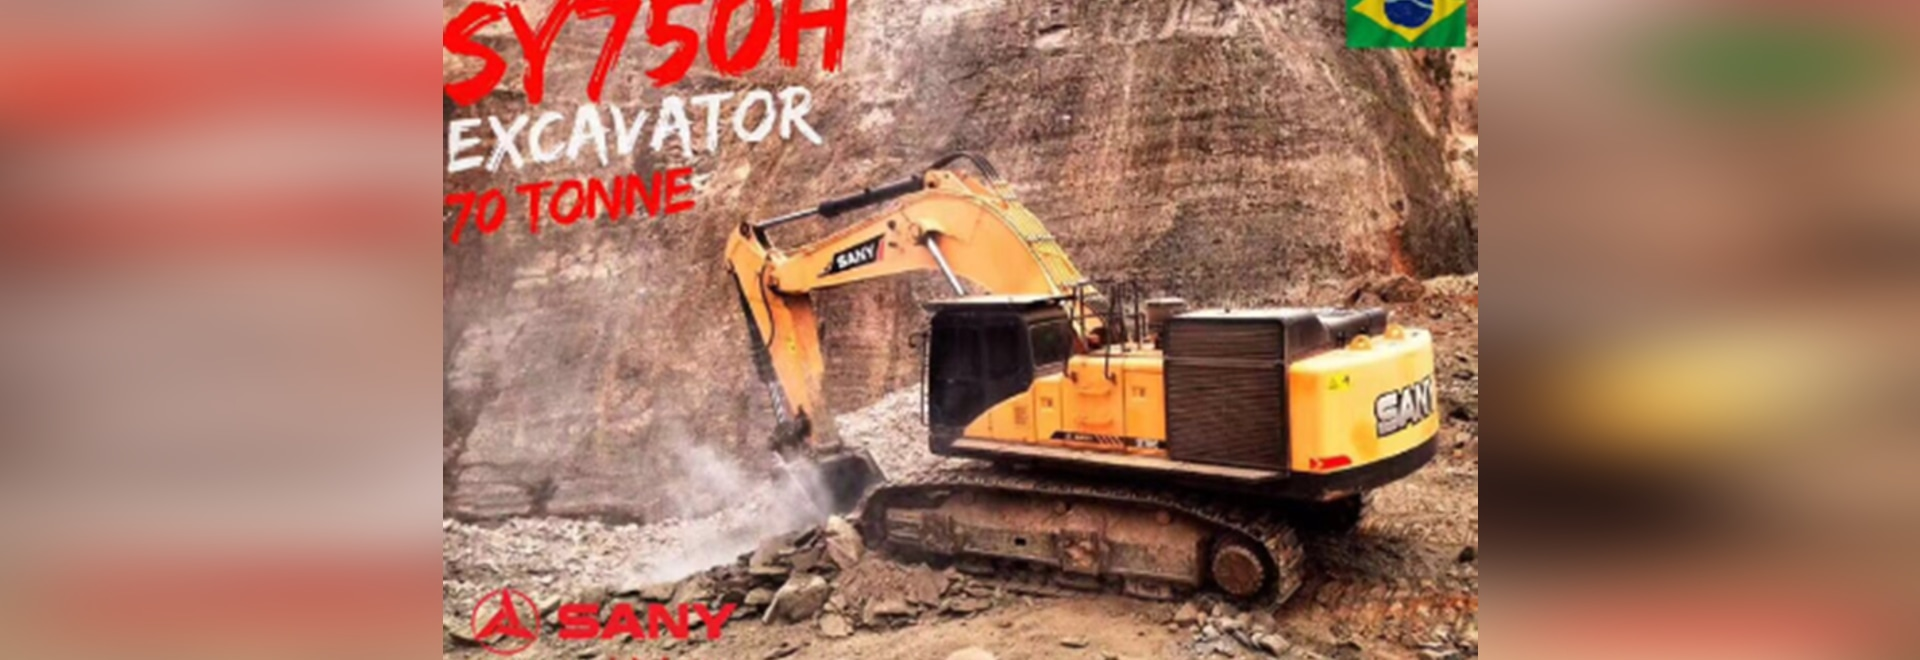 SANY large excavators are the best choice for the mining market in Brazil